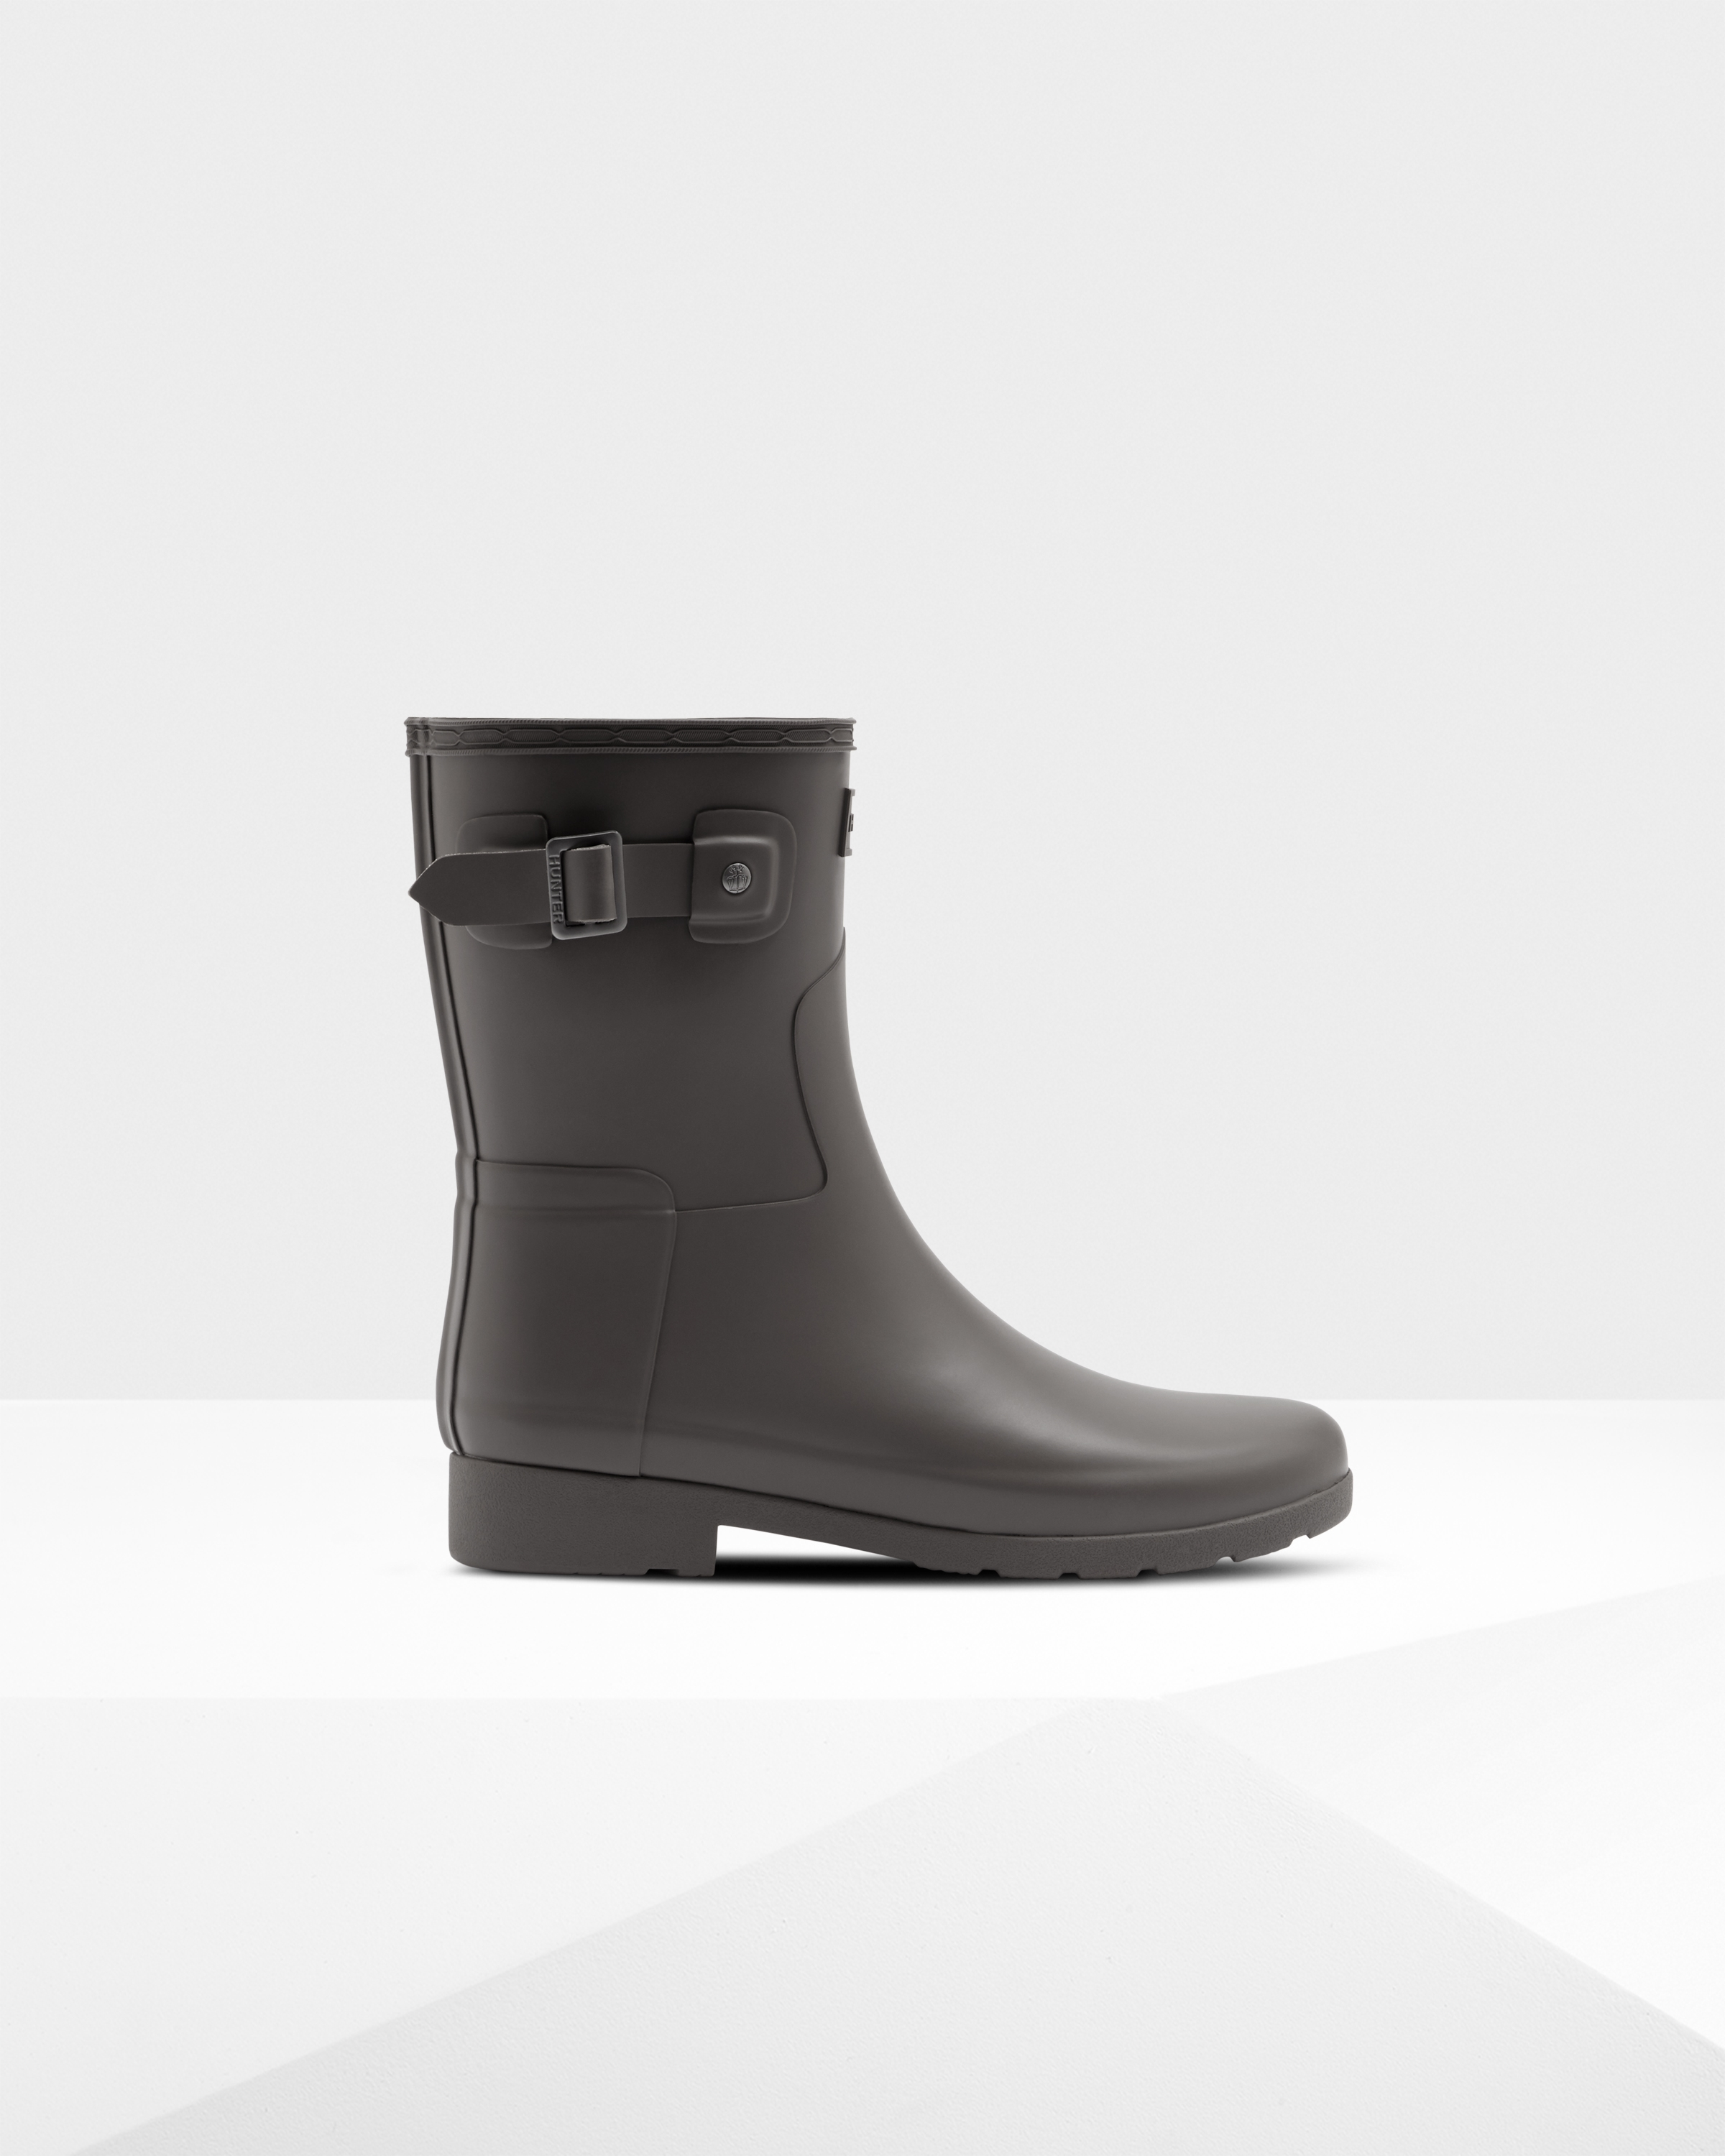 Women's Refined Slim Fit Short Rain Boots: Seep Grey   Official Hunter Boots Store